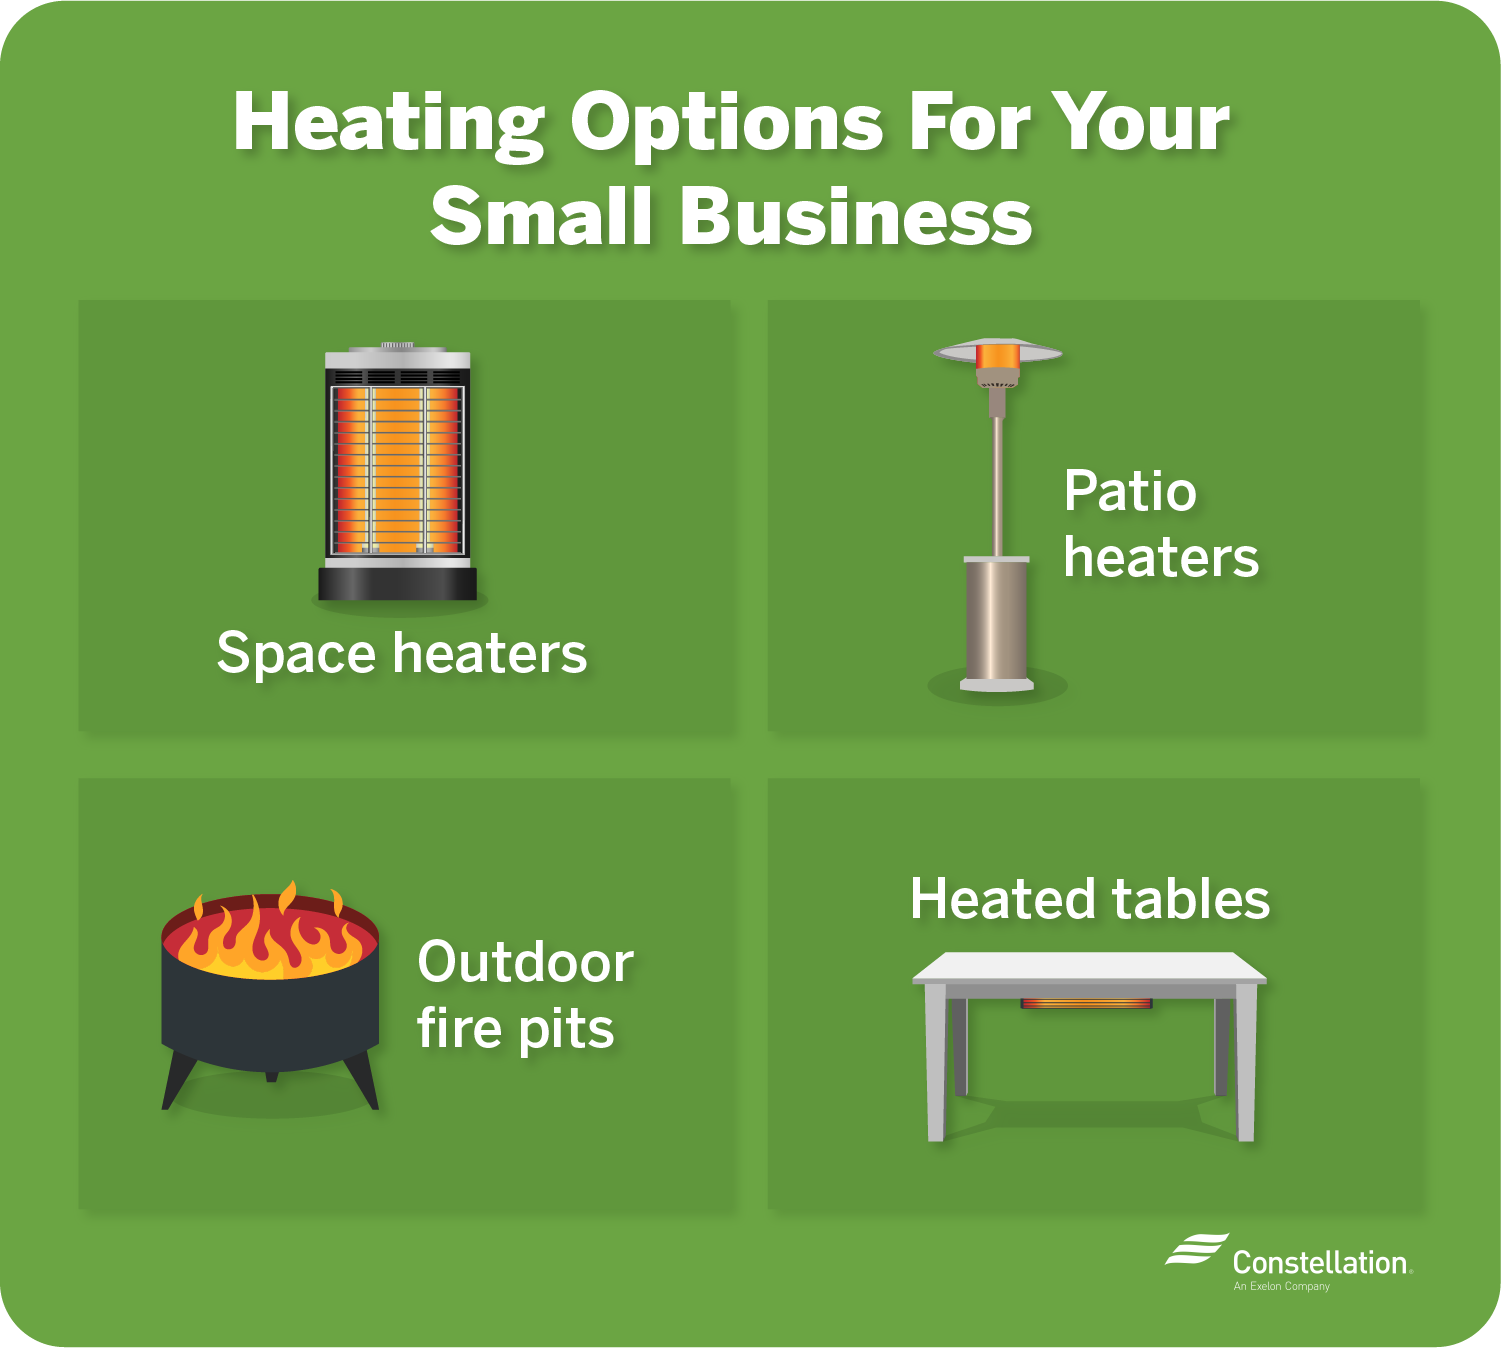 Heating options for your small business